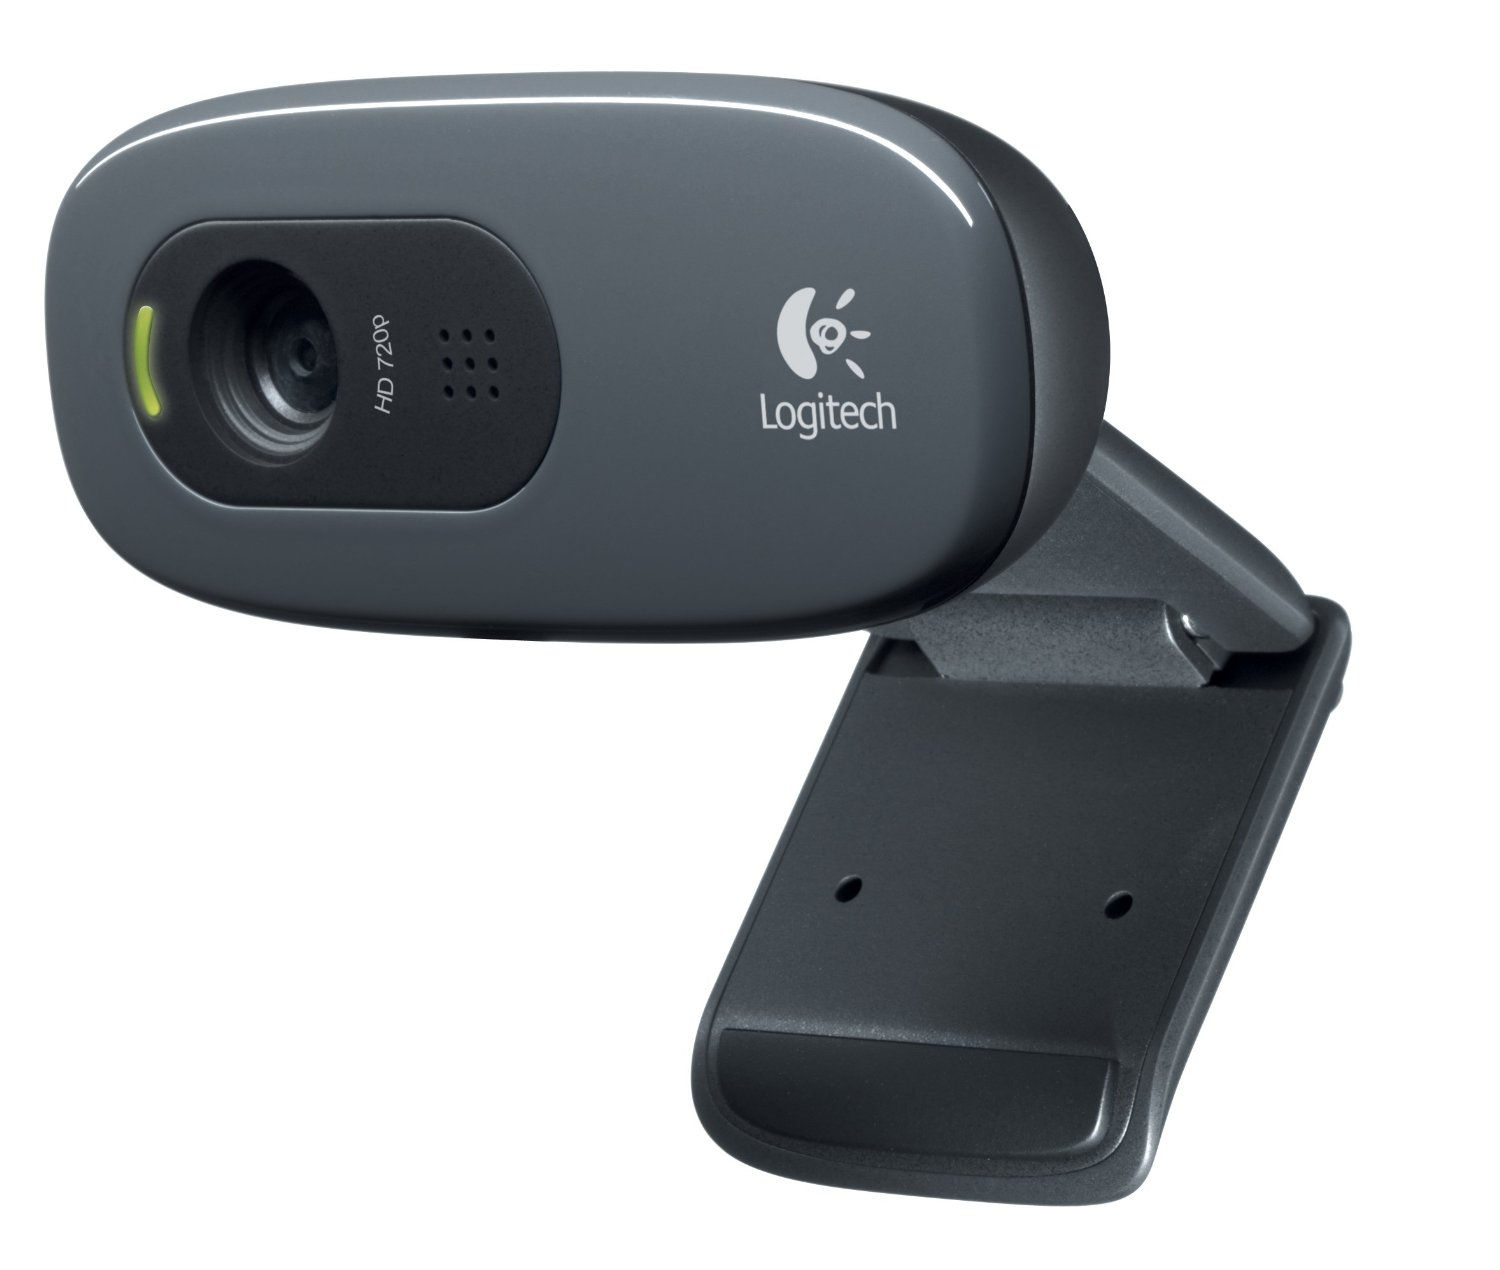 Logitech C270 720p 3-MP Widescreen HD Webcam with Video Calling and Recording logitech c270 720p 3 мп широкоформатный hd веб камера с видеотелефония и записи